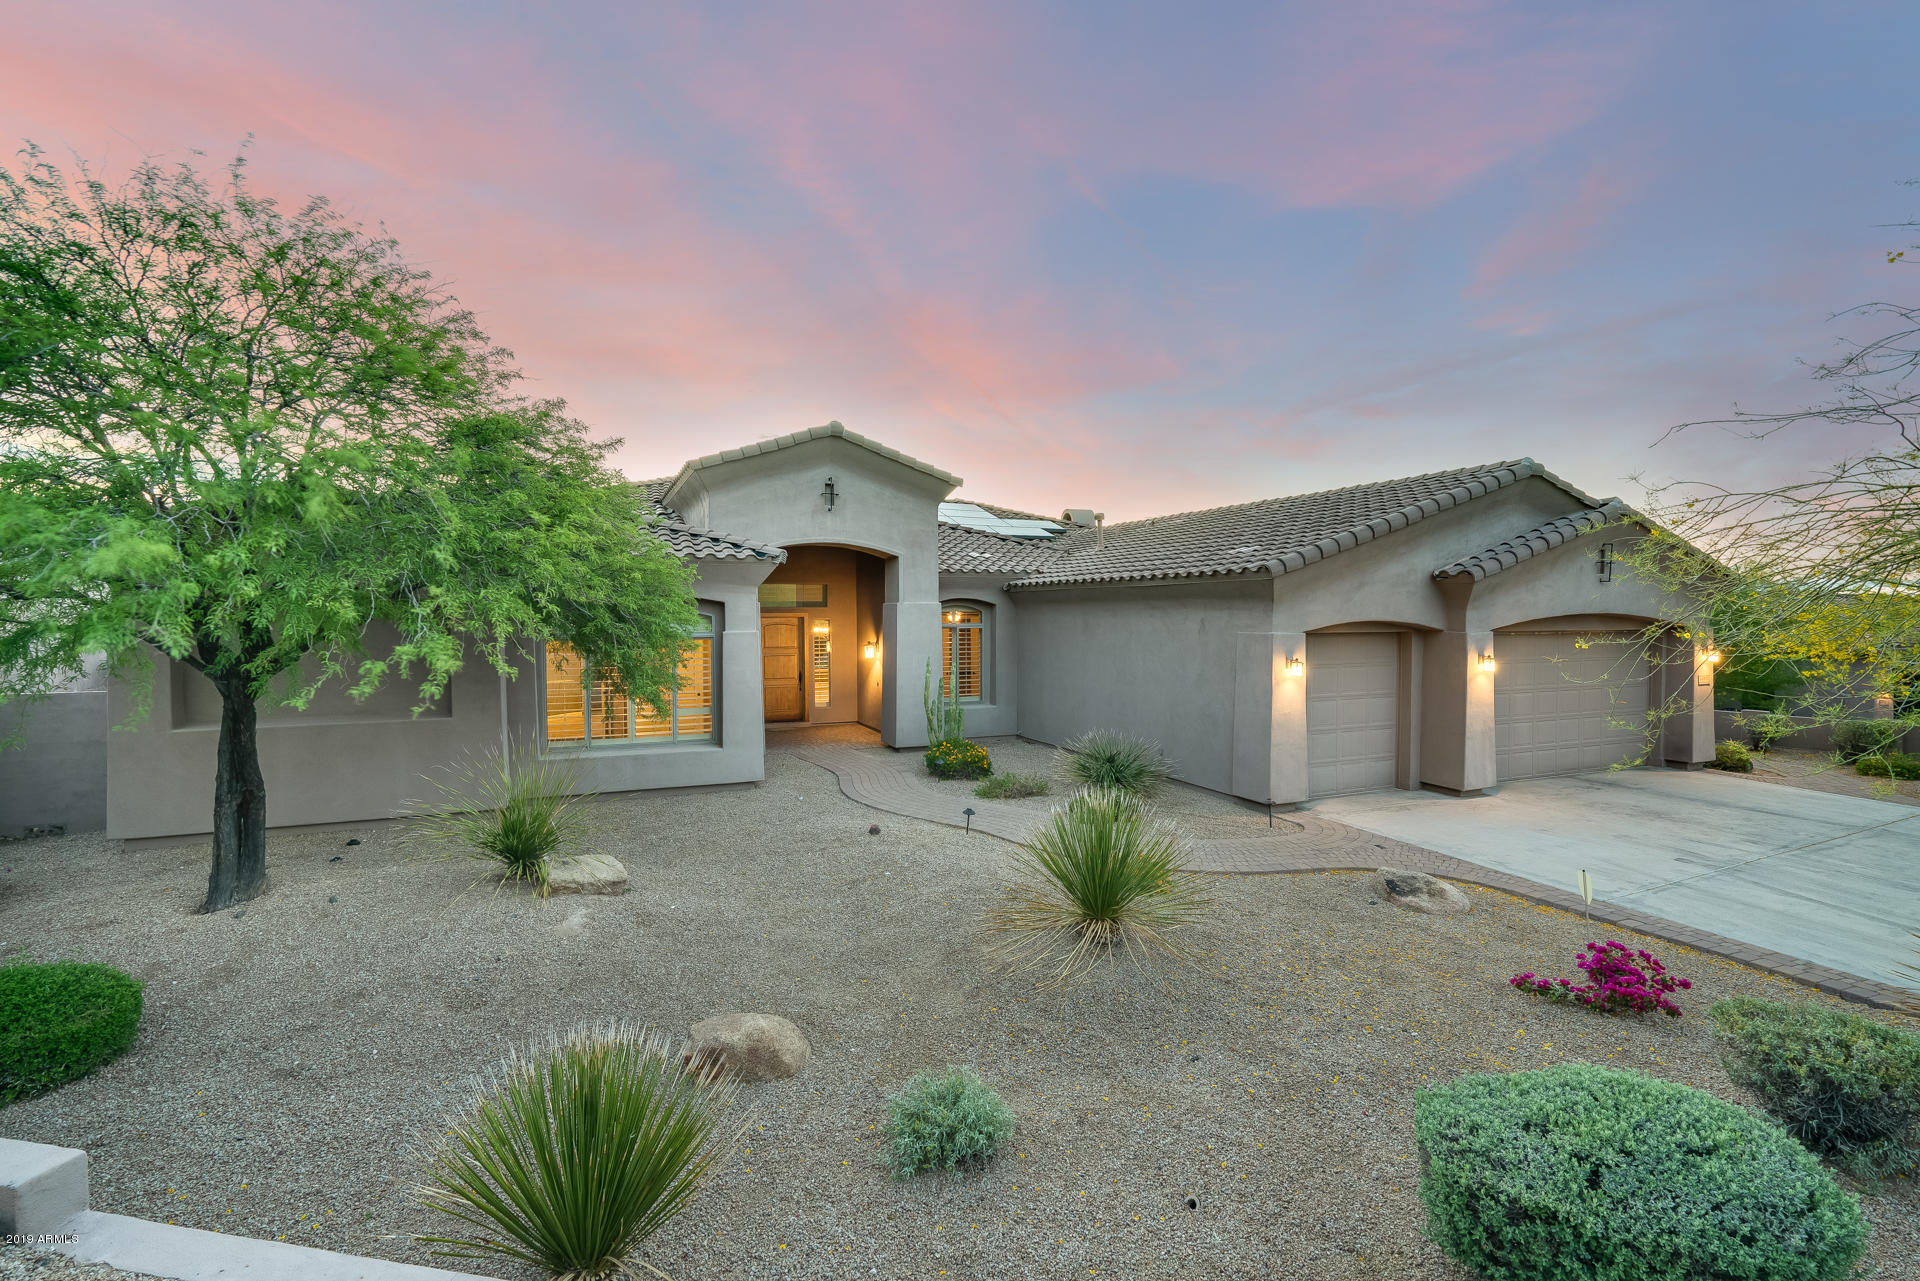 27637 N 83RD Lane, Peoria in Maricopa County, AZ 85383 Home for Sale